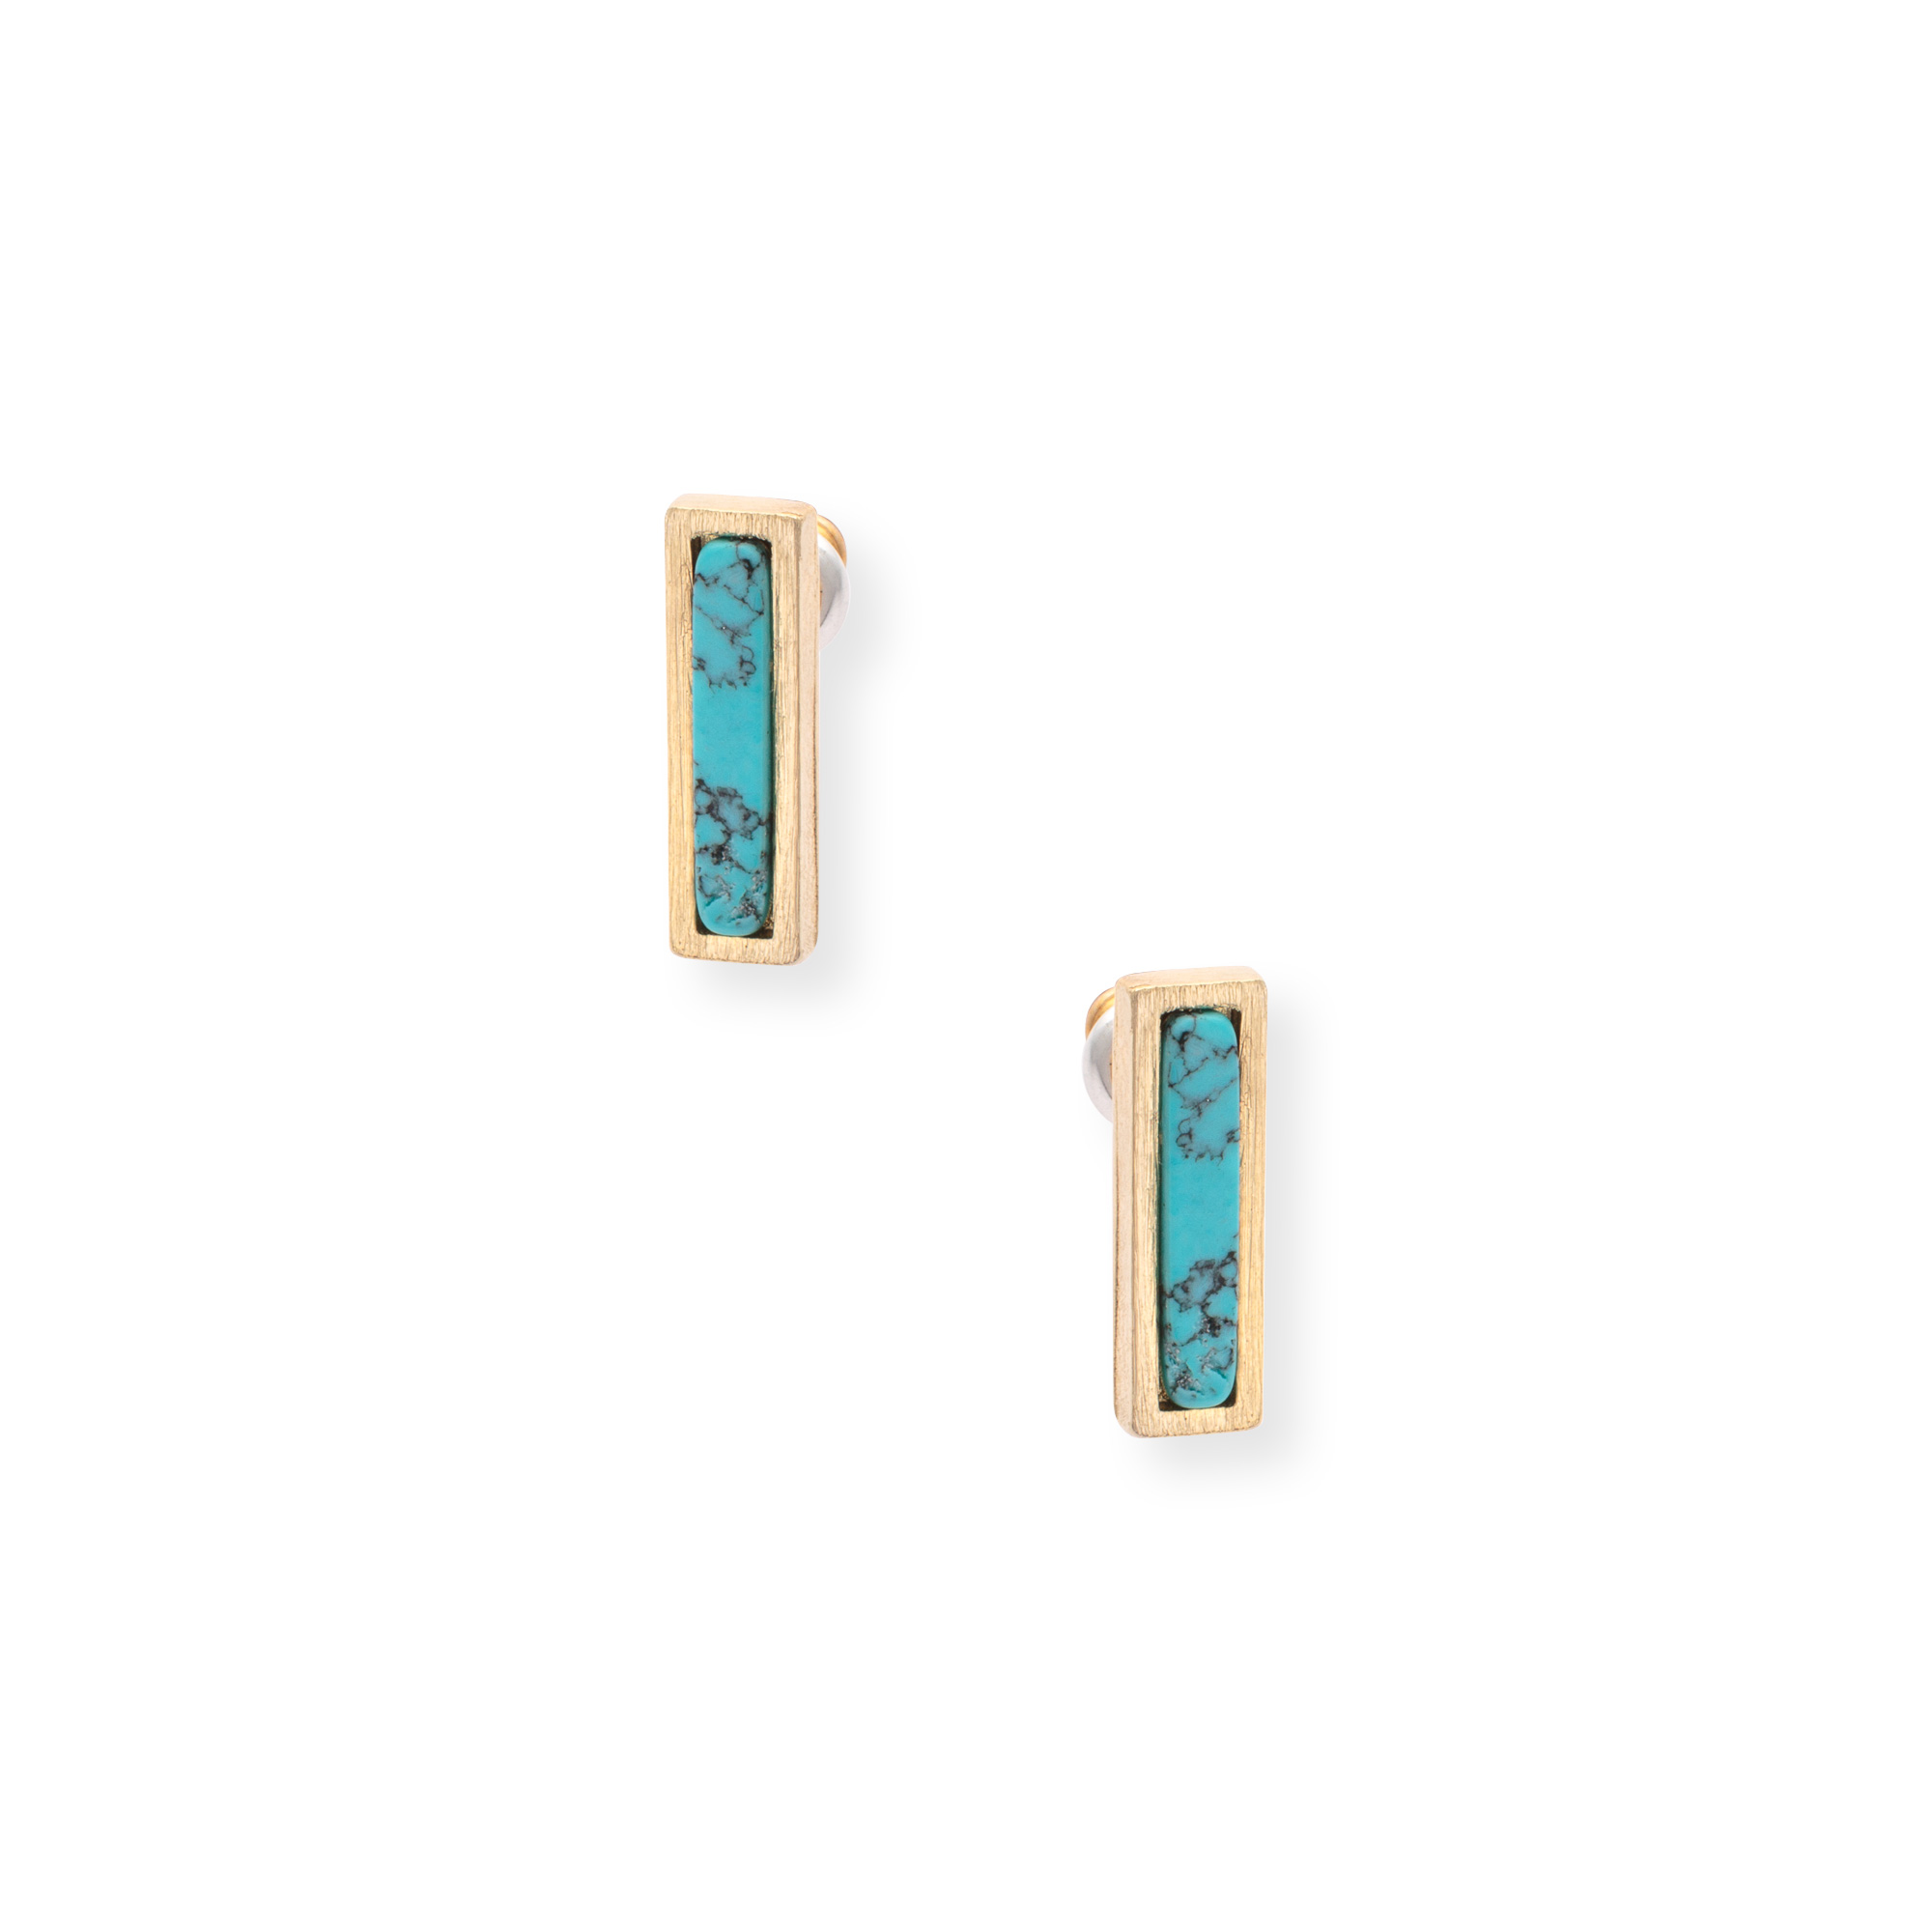 p rose fullxfull stud turquoise earring vintage gold handmade cfkj il earrings jewelry set modern style